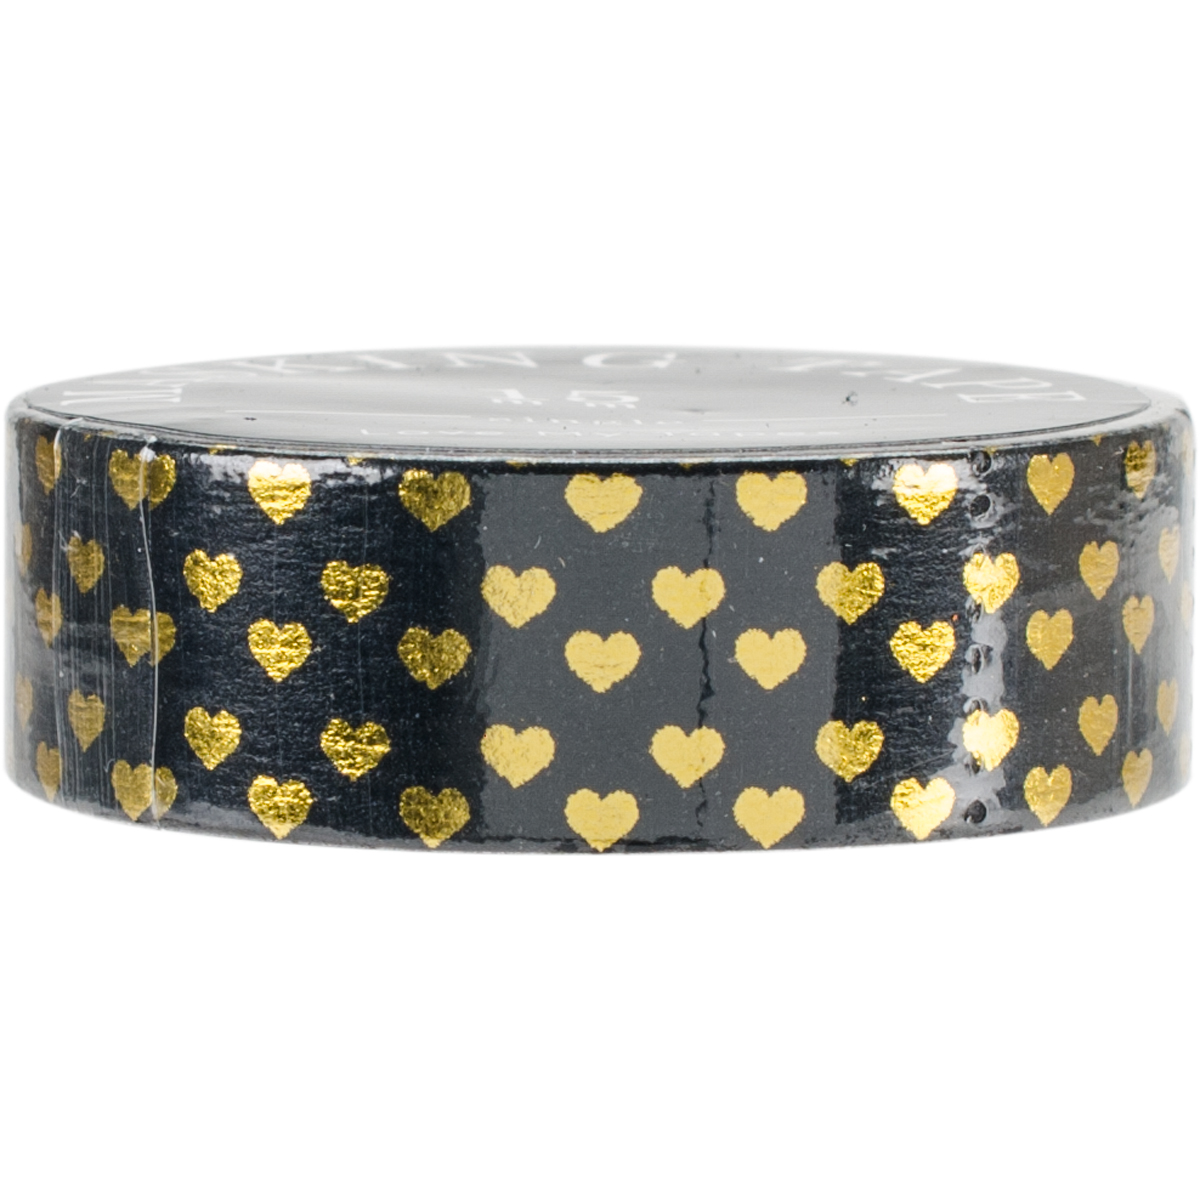 Love My Tapes Foil Washi Tape 15mmx10m-Black Gold Hearts